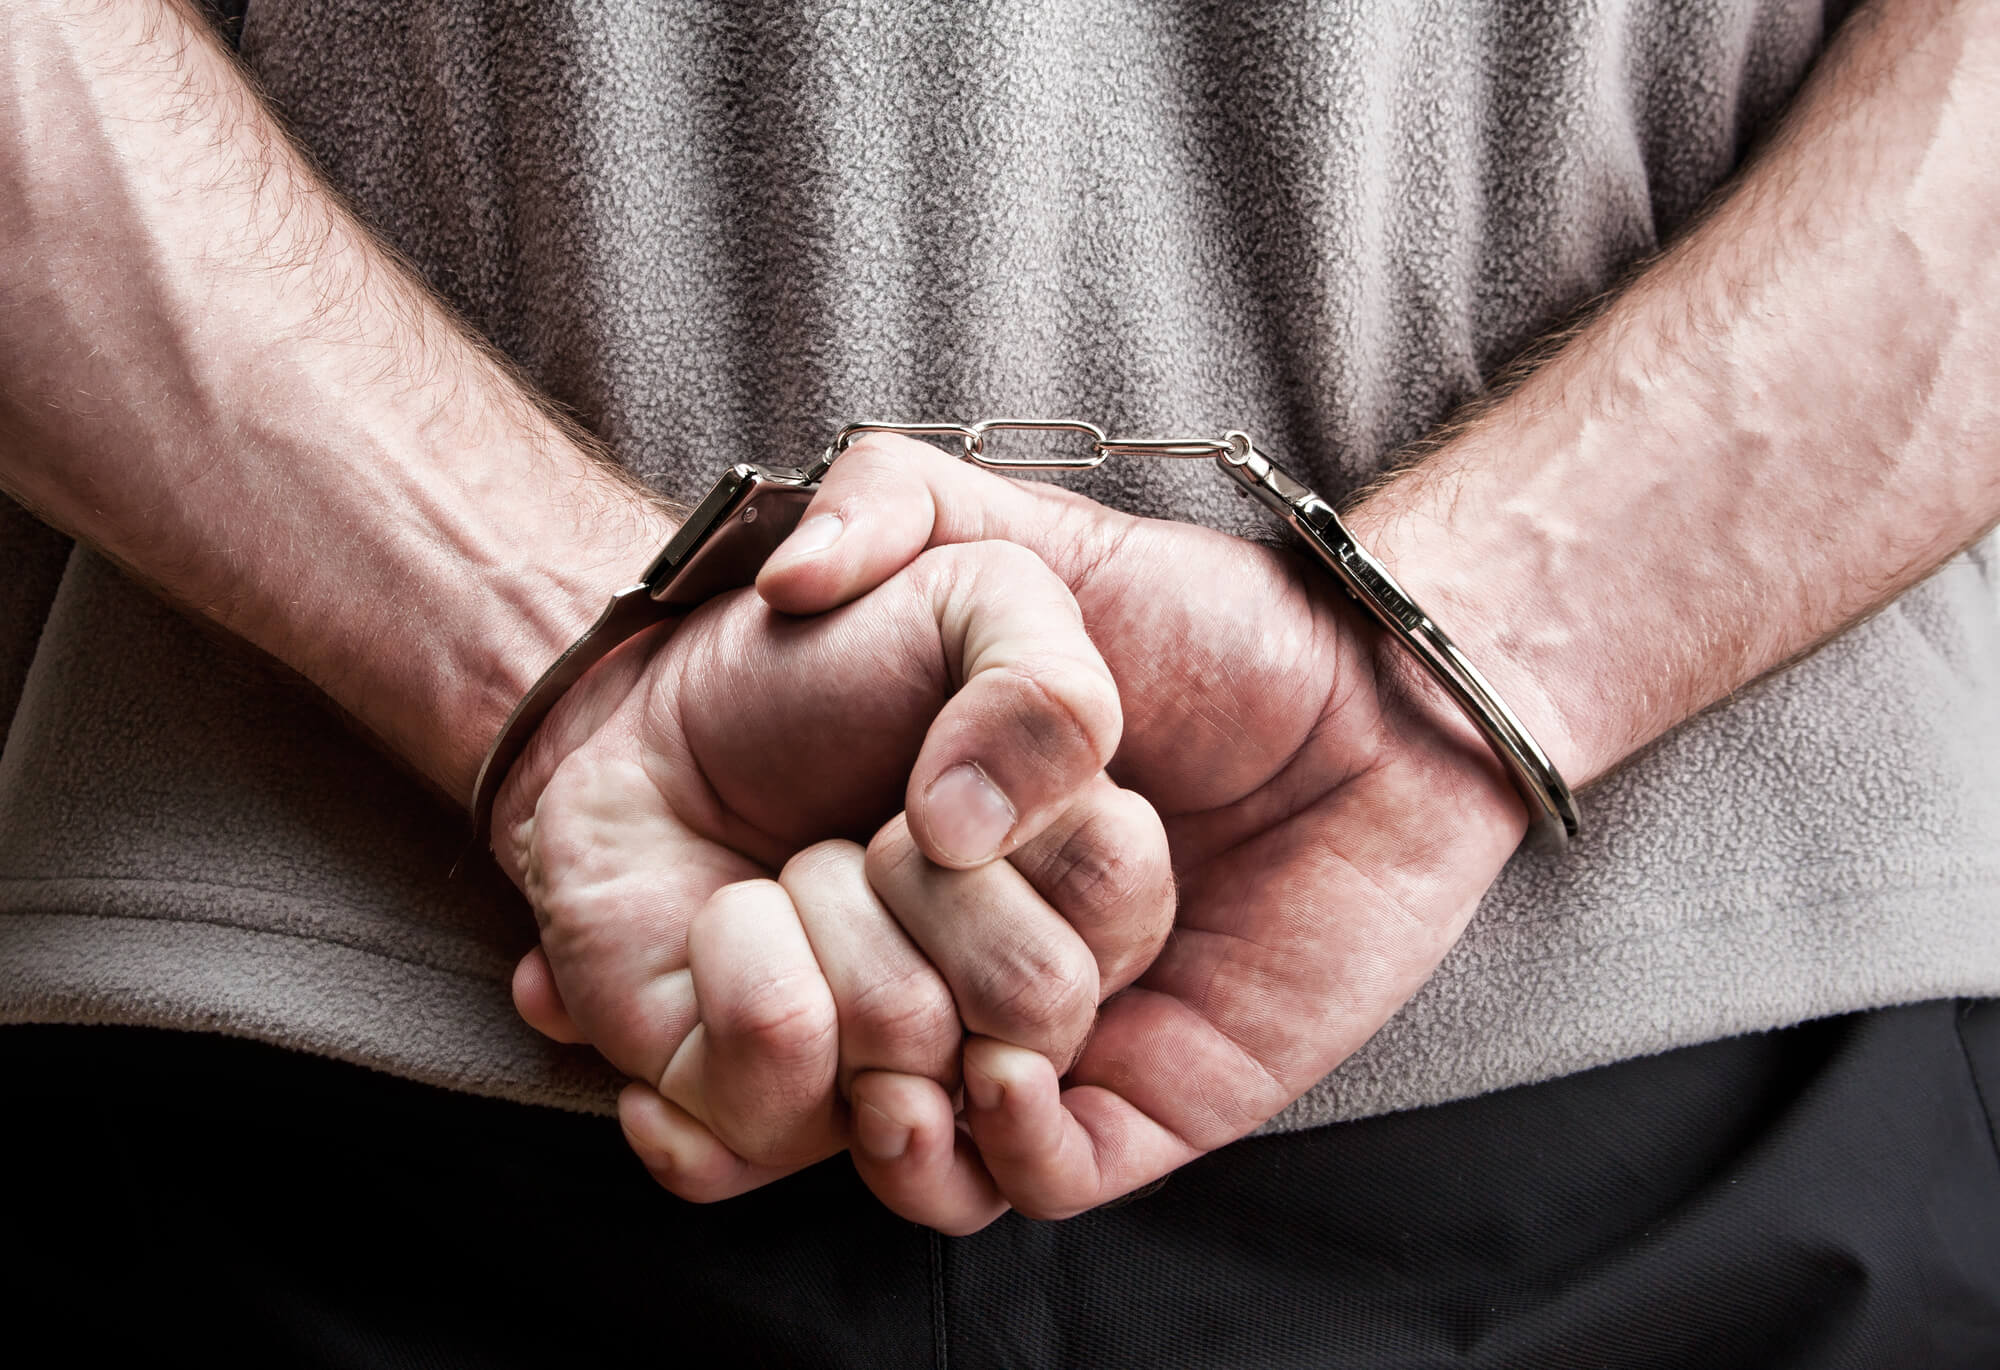 where is the best retail theft attorney west palm beach?